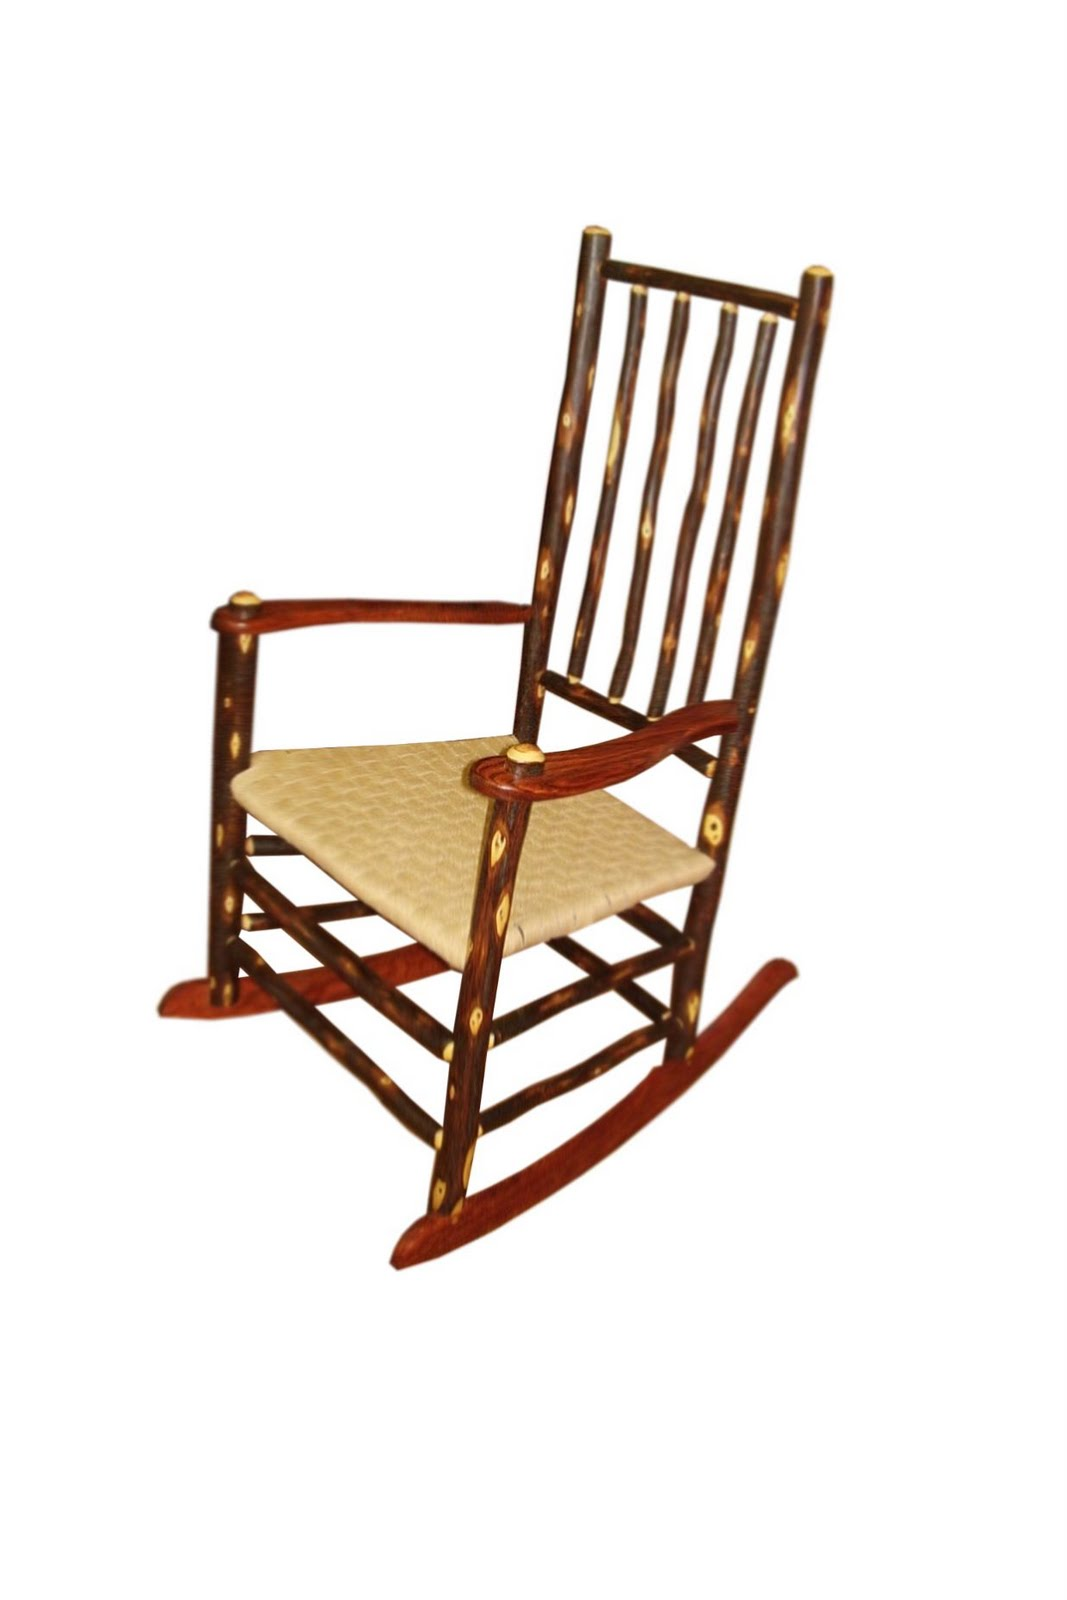 Rose Wood Craft Rustic Rocking Chair